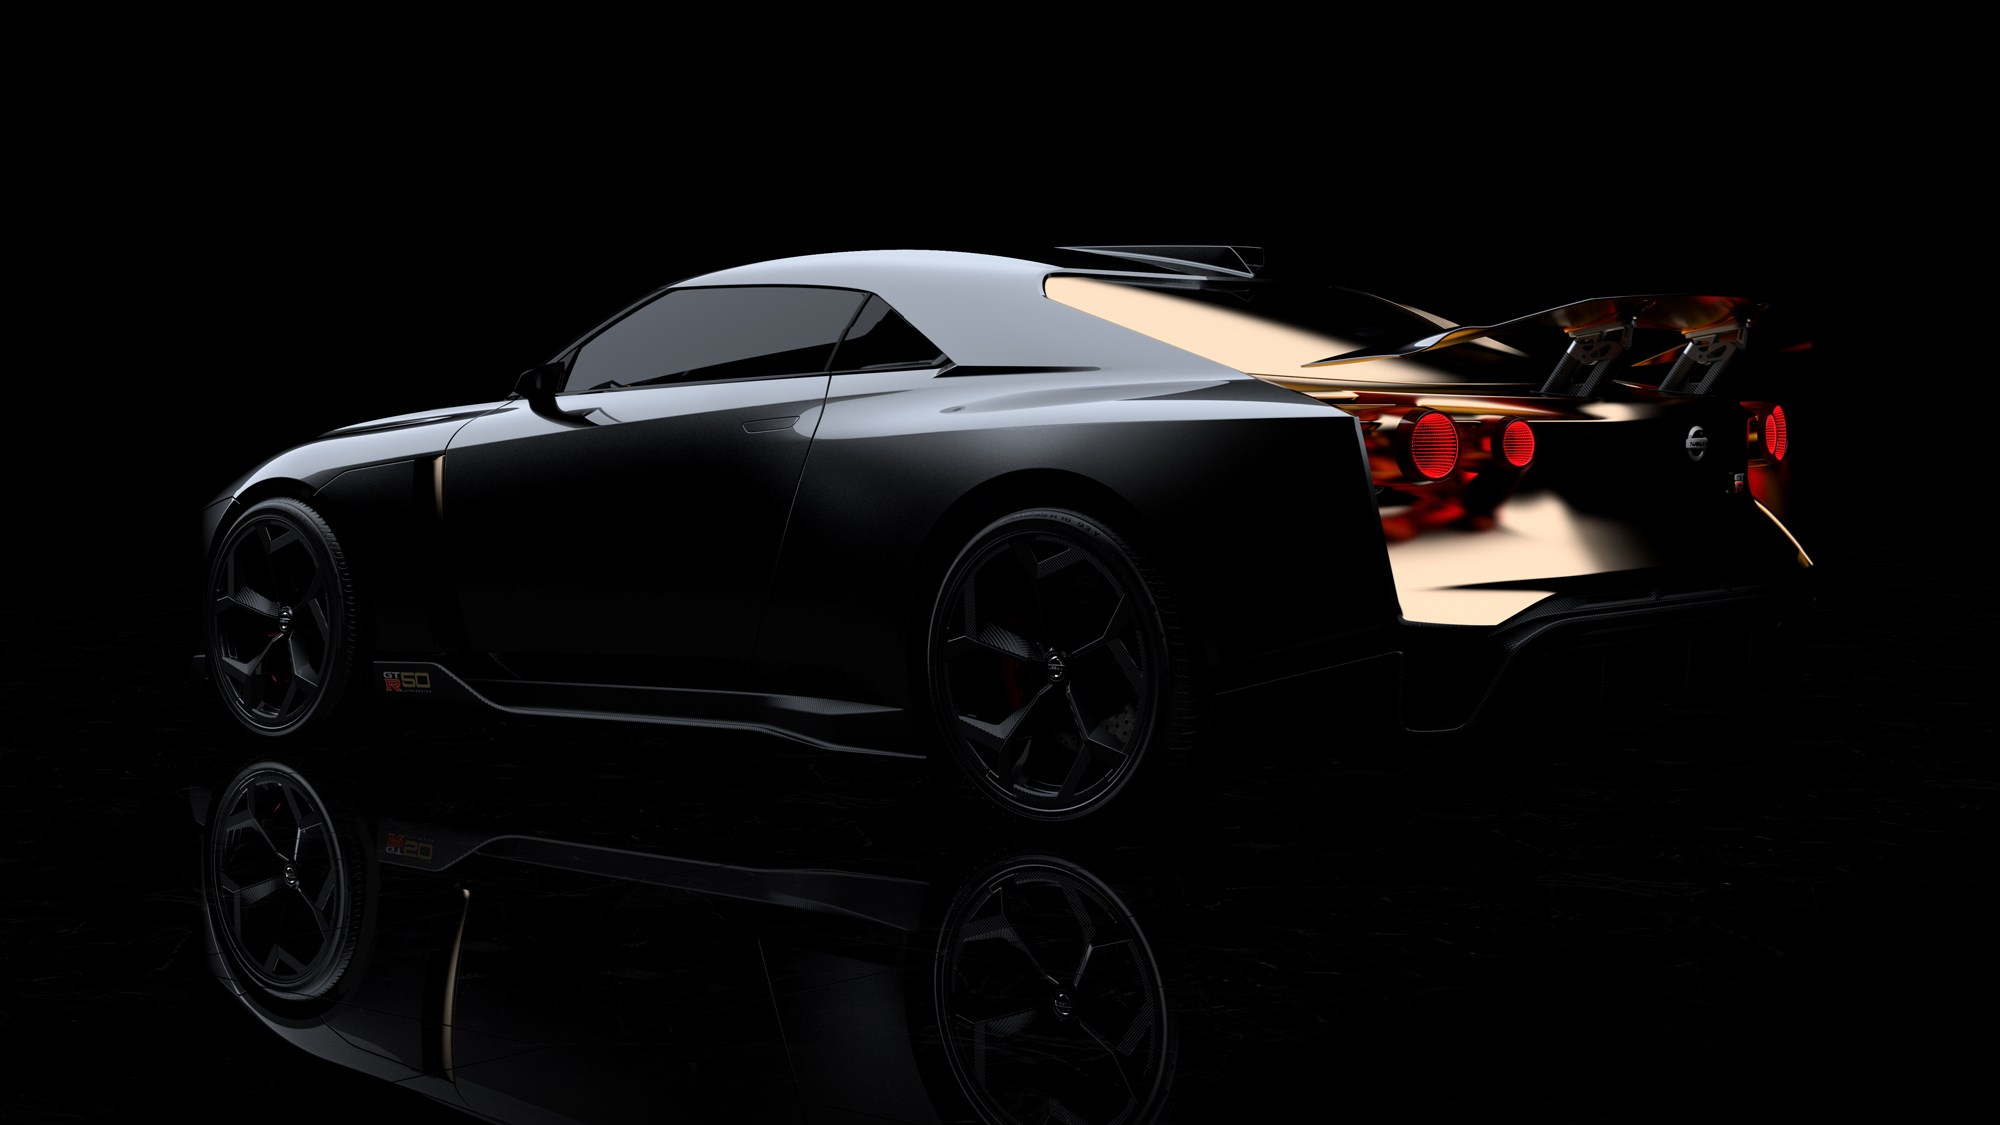 nissan gt r50 885 000 production version confirmed car magazine. Black Bedroom Furniture Sets. Home Design Ideas